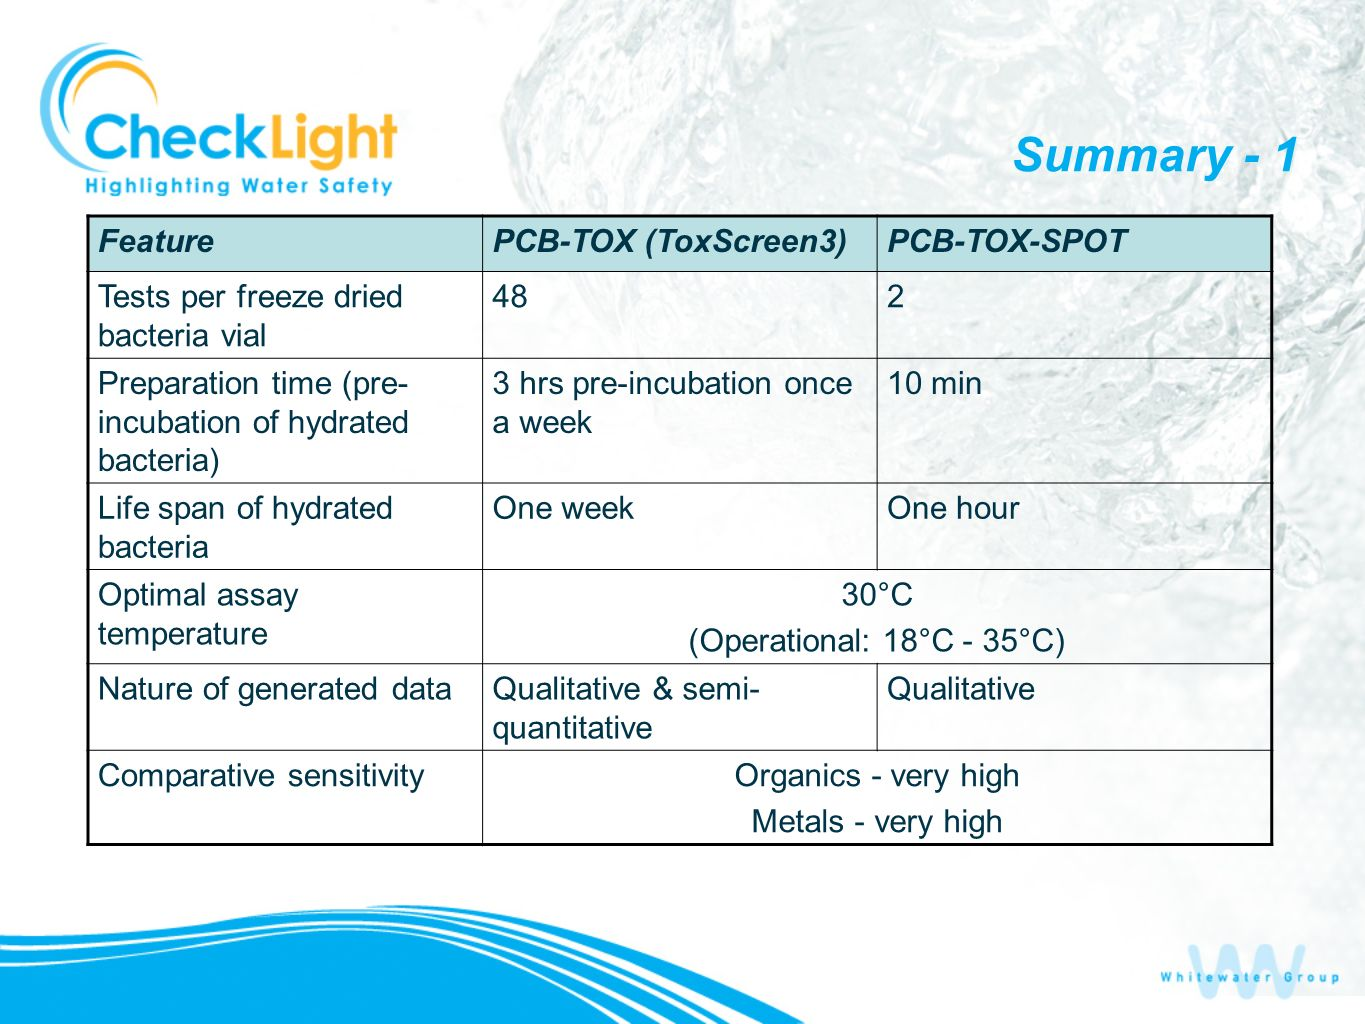 Summary - 1 PCB-TOX-SPOTPCB-TOX (ToxScreen3)Feature 248Tests per freeze dried bacteria vial 10 min3 hrs pre-incubation once a week Preparation time (p